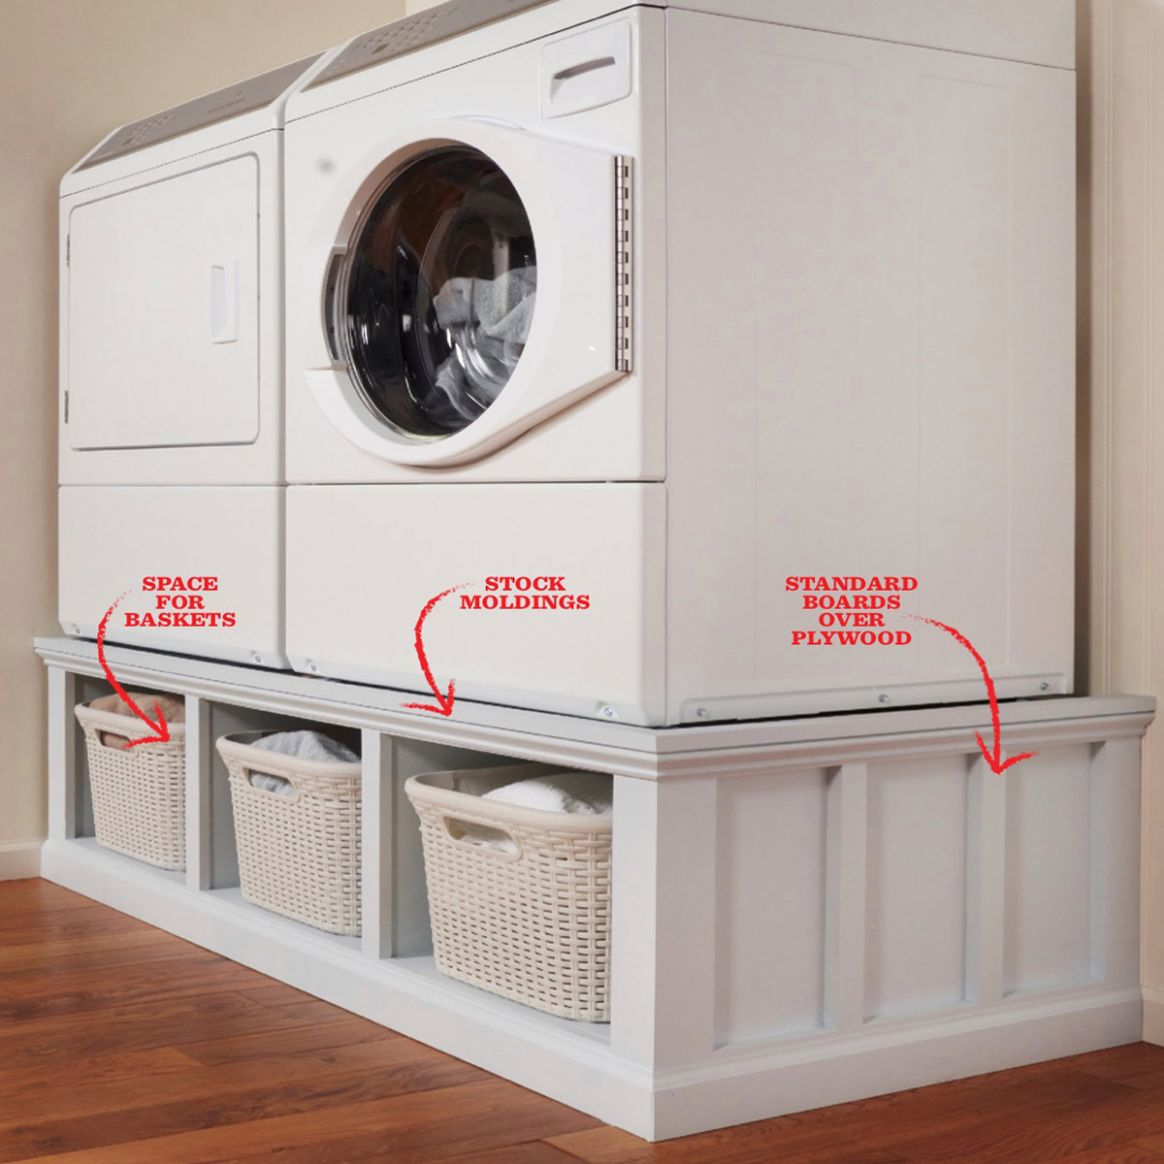 12 Cheap Laundry Room Ideas You Can DIY Today! | Family Handyman - laundry room bin ideas